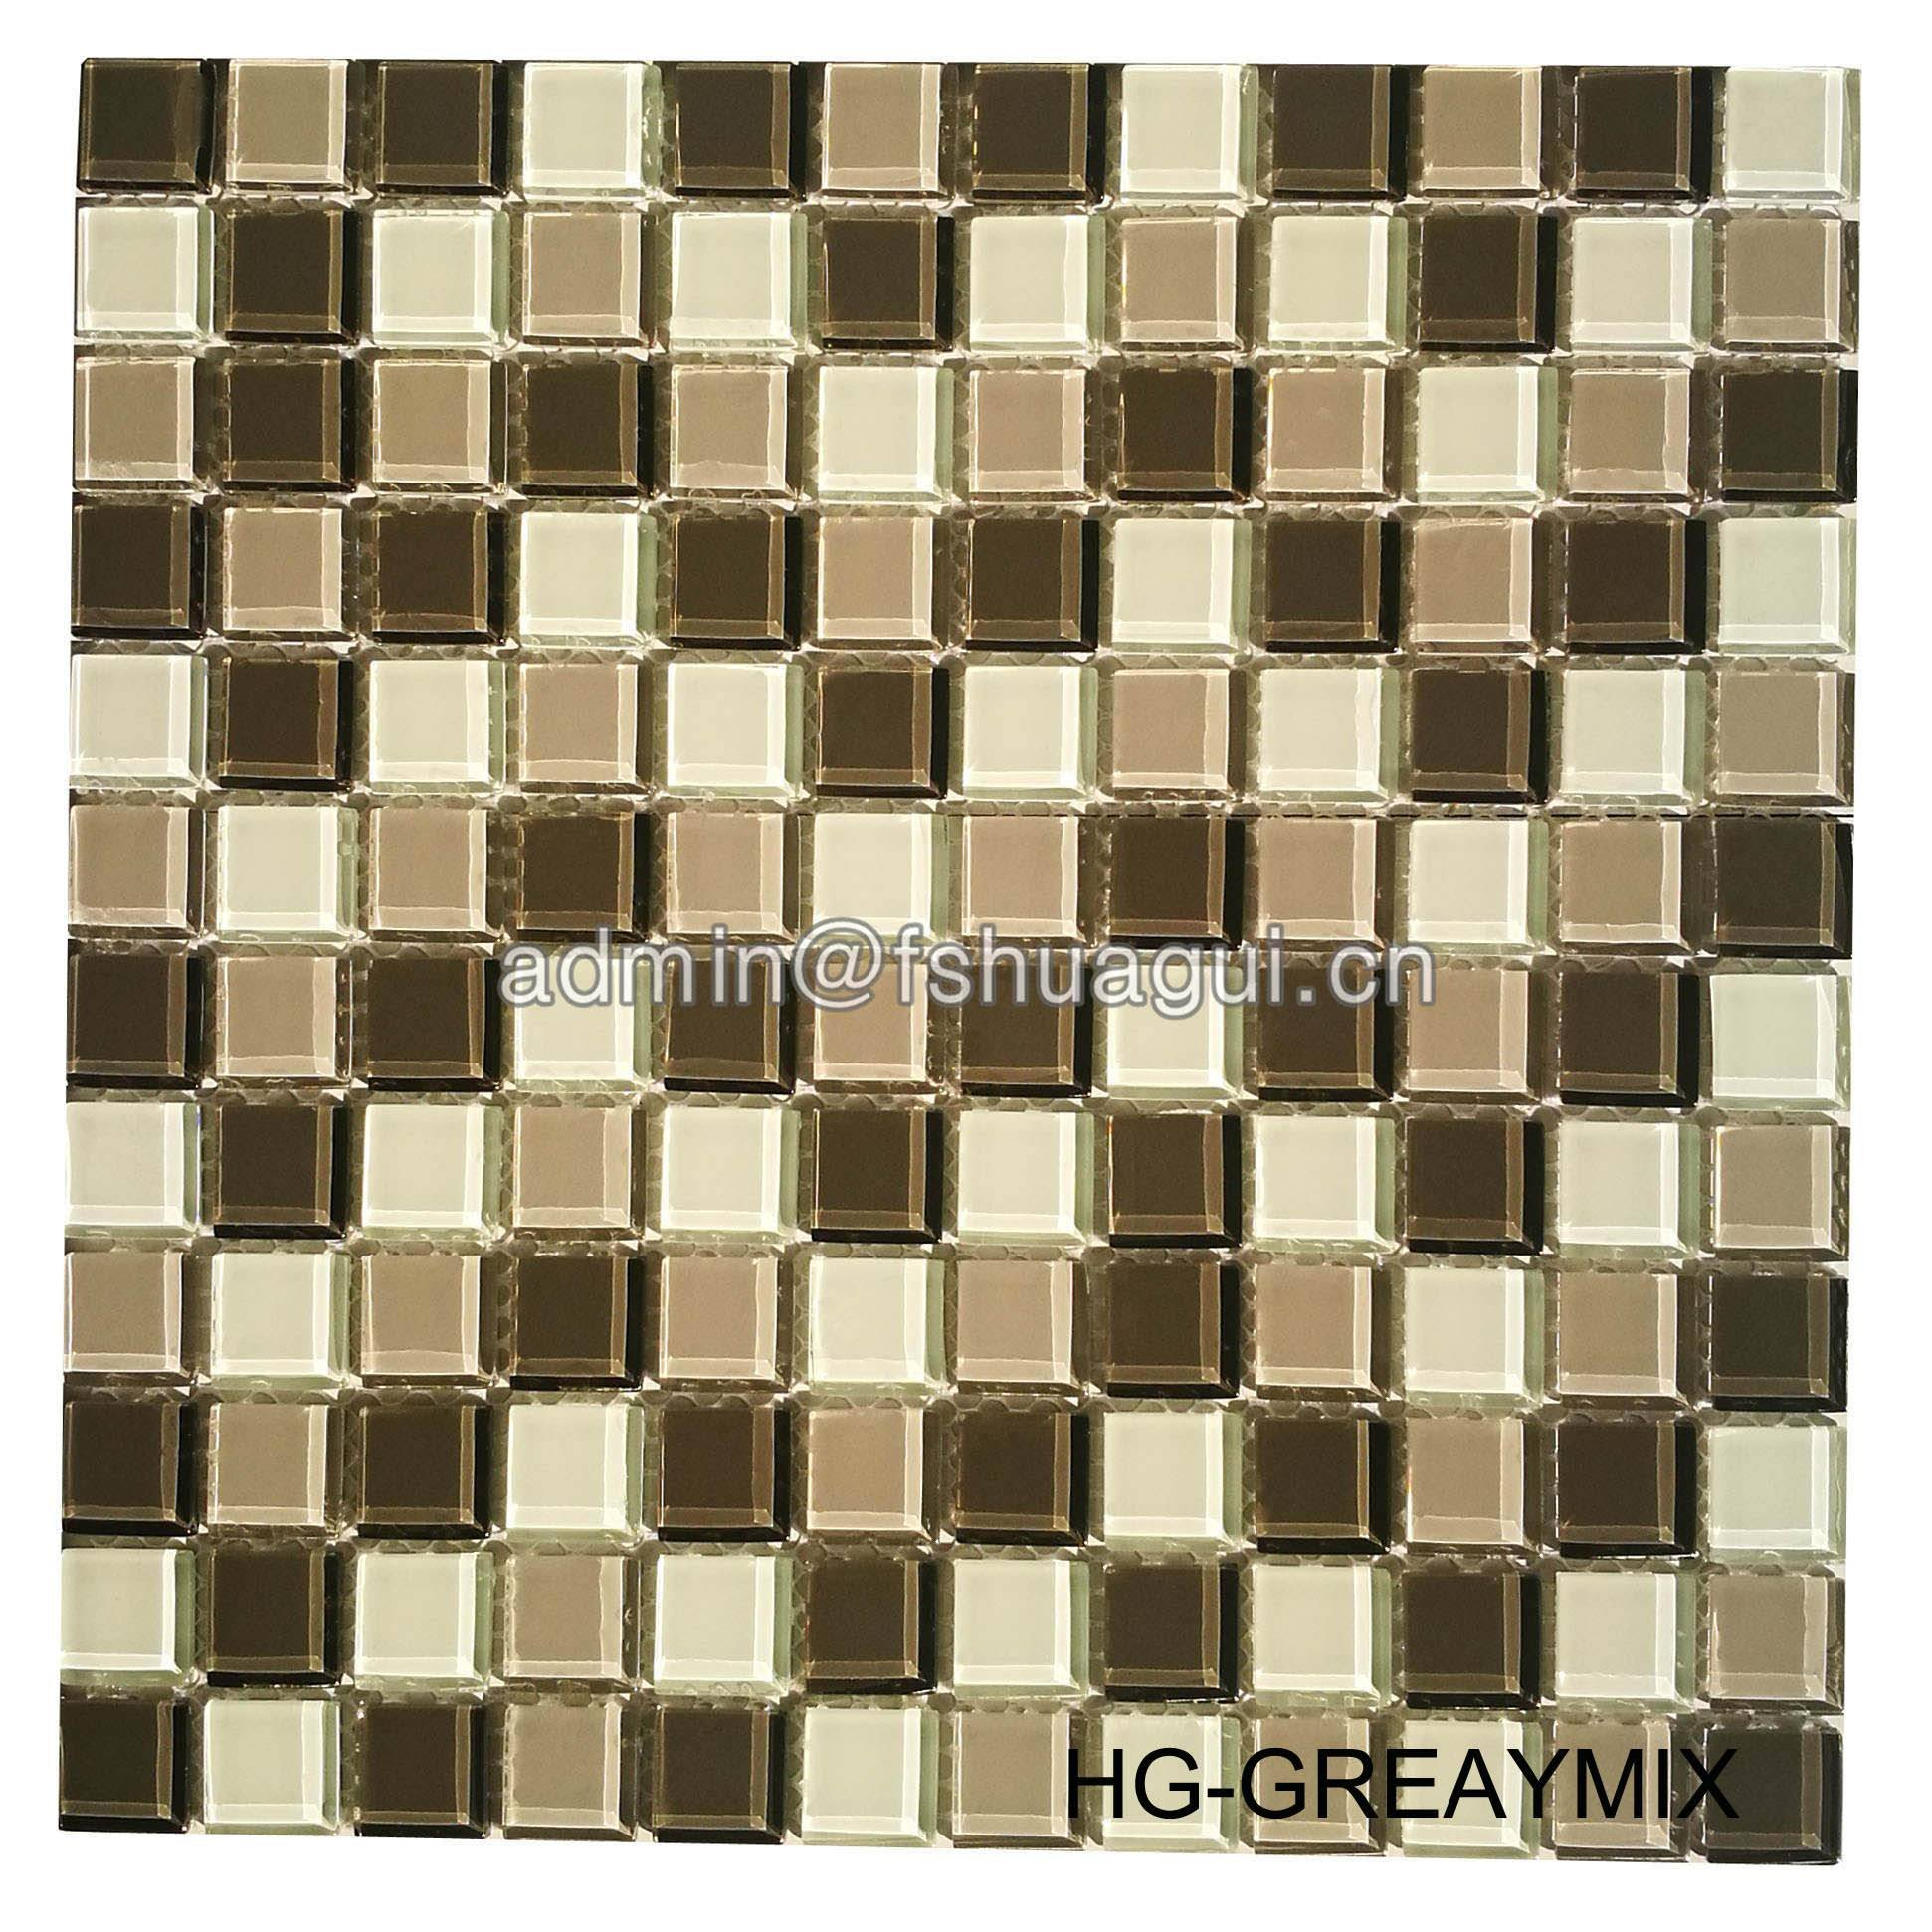 Huagui Interior Decorative Room  Crystal Glass Mosaic Tile HG-GREYMIX GLASS MOSAIC TILE image34